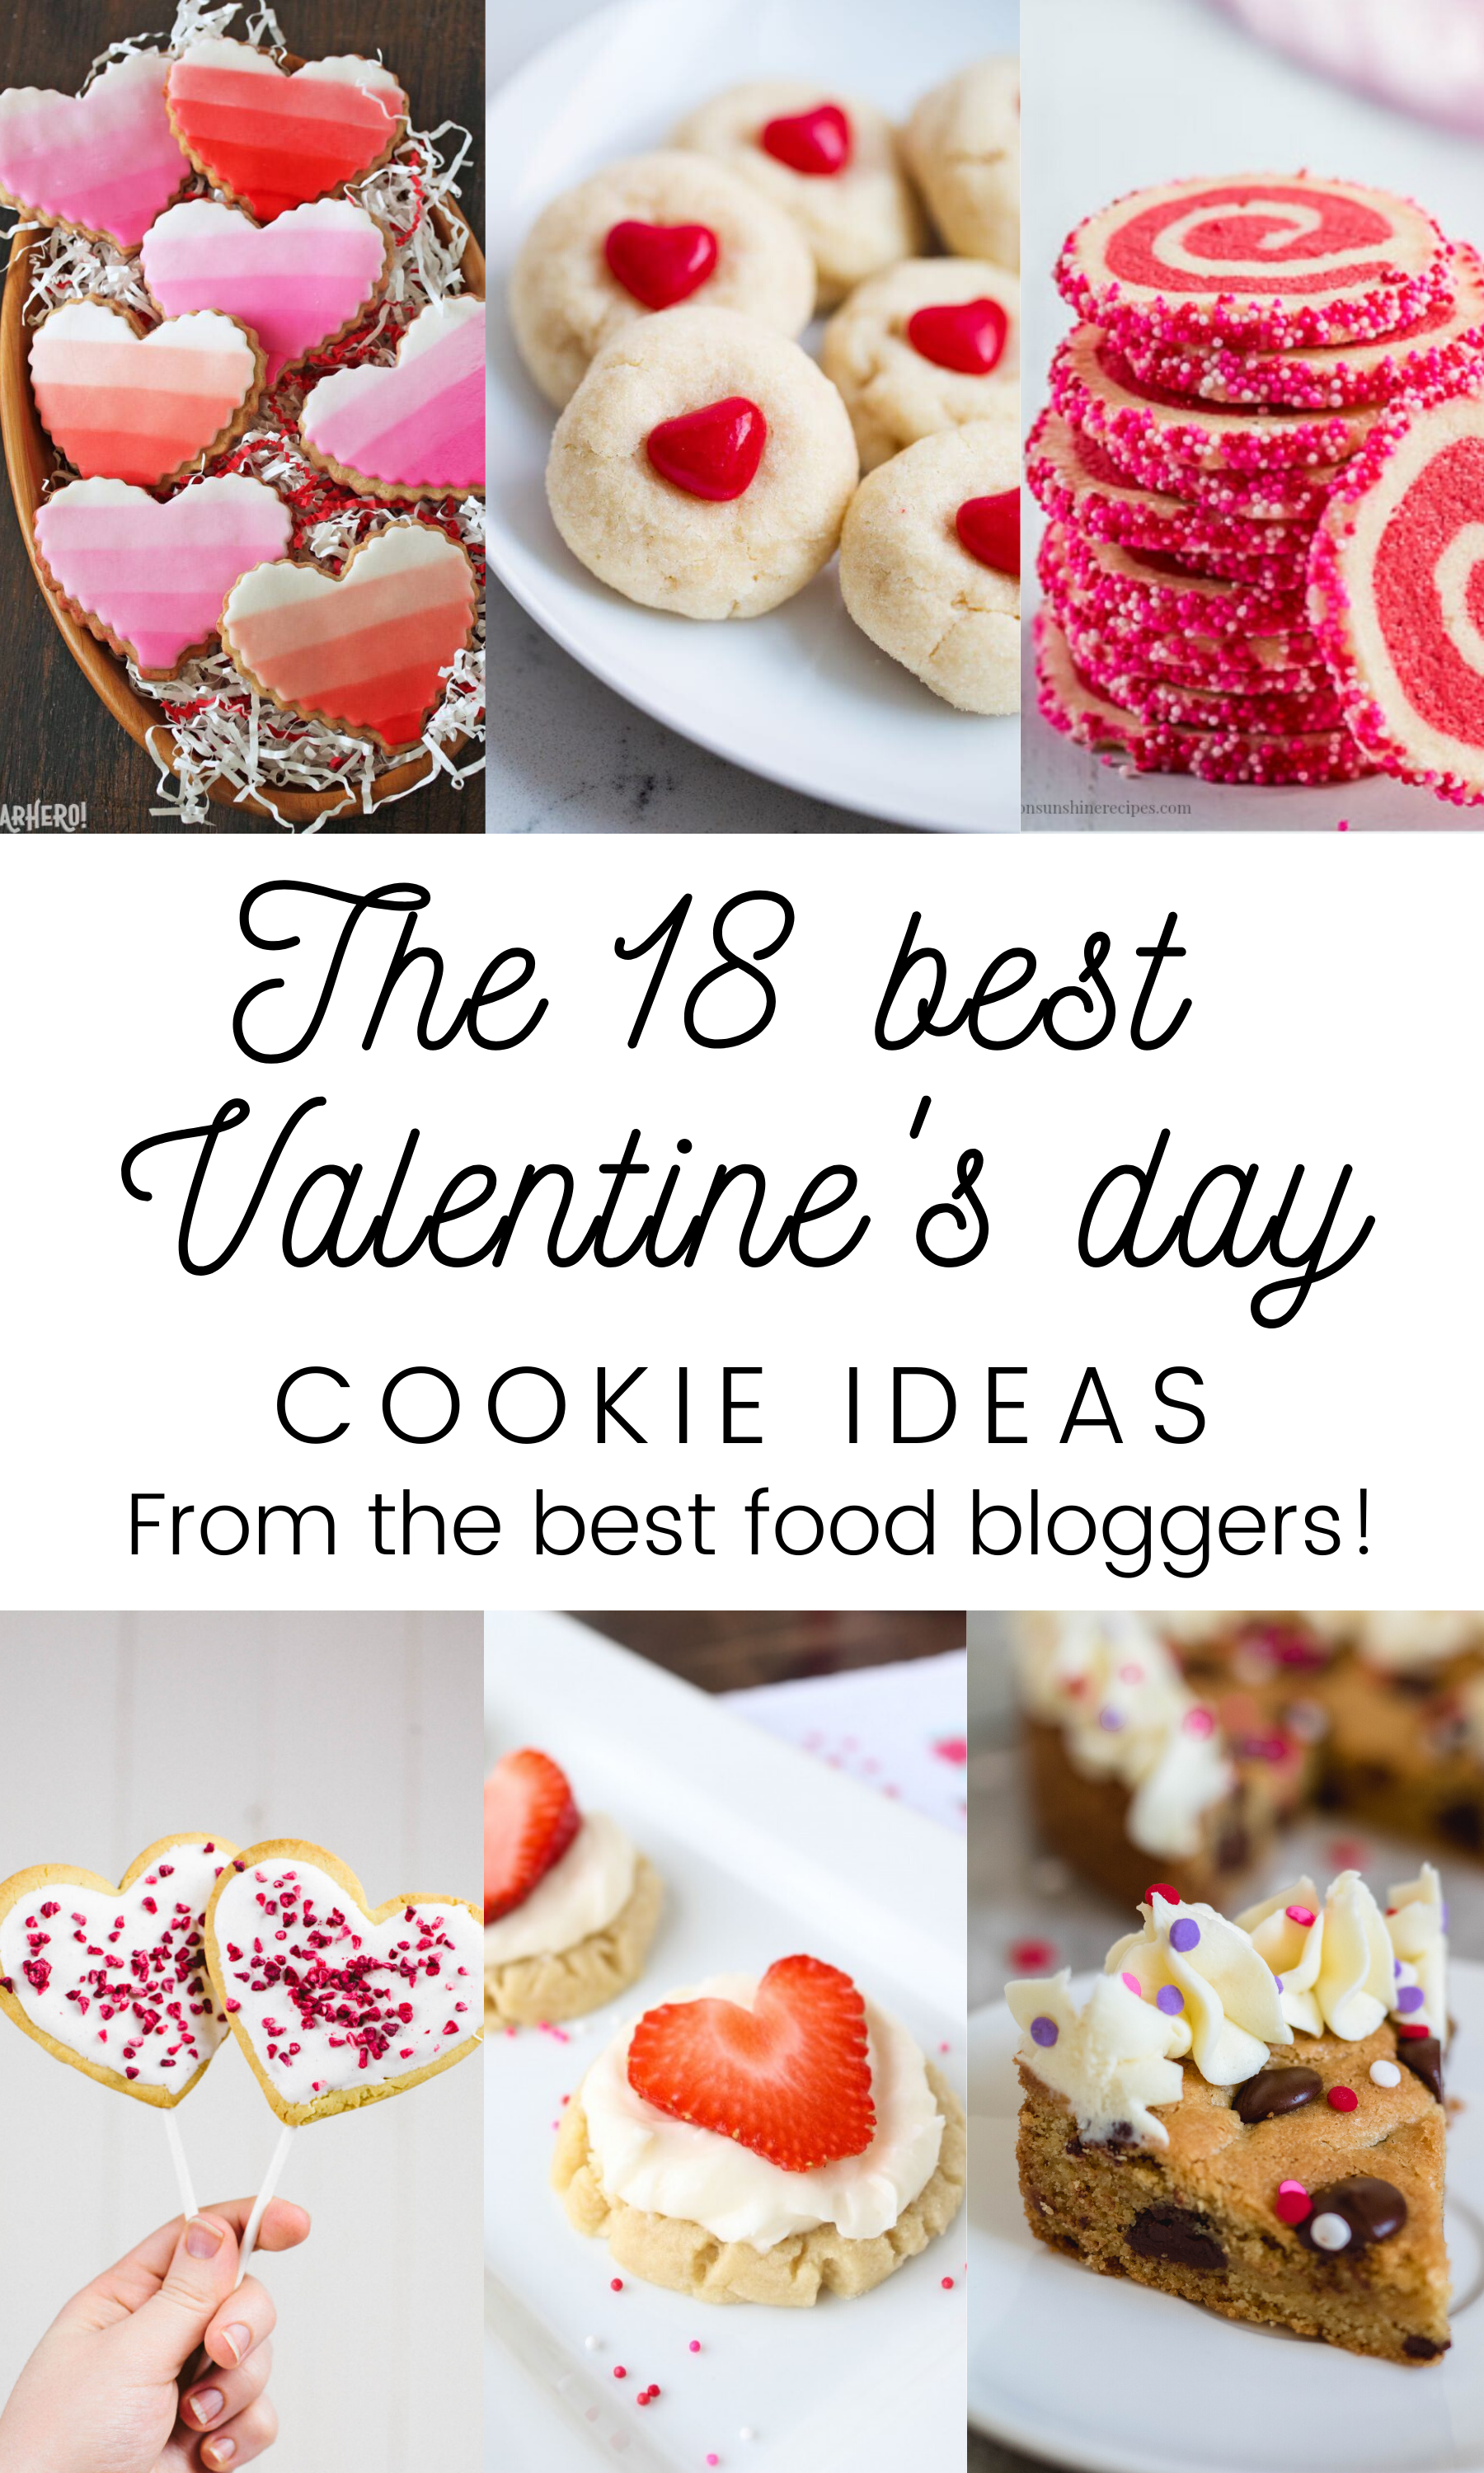 Best valentine's day cookie ideas collage for pinterest